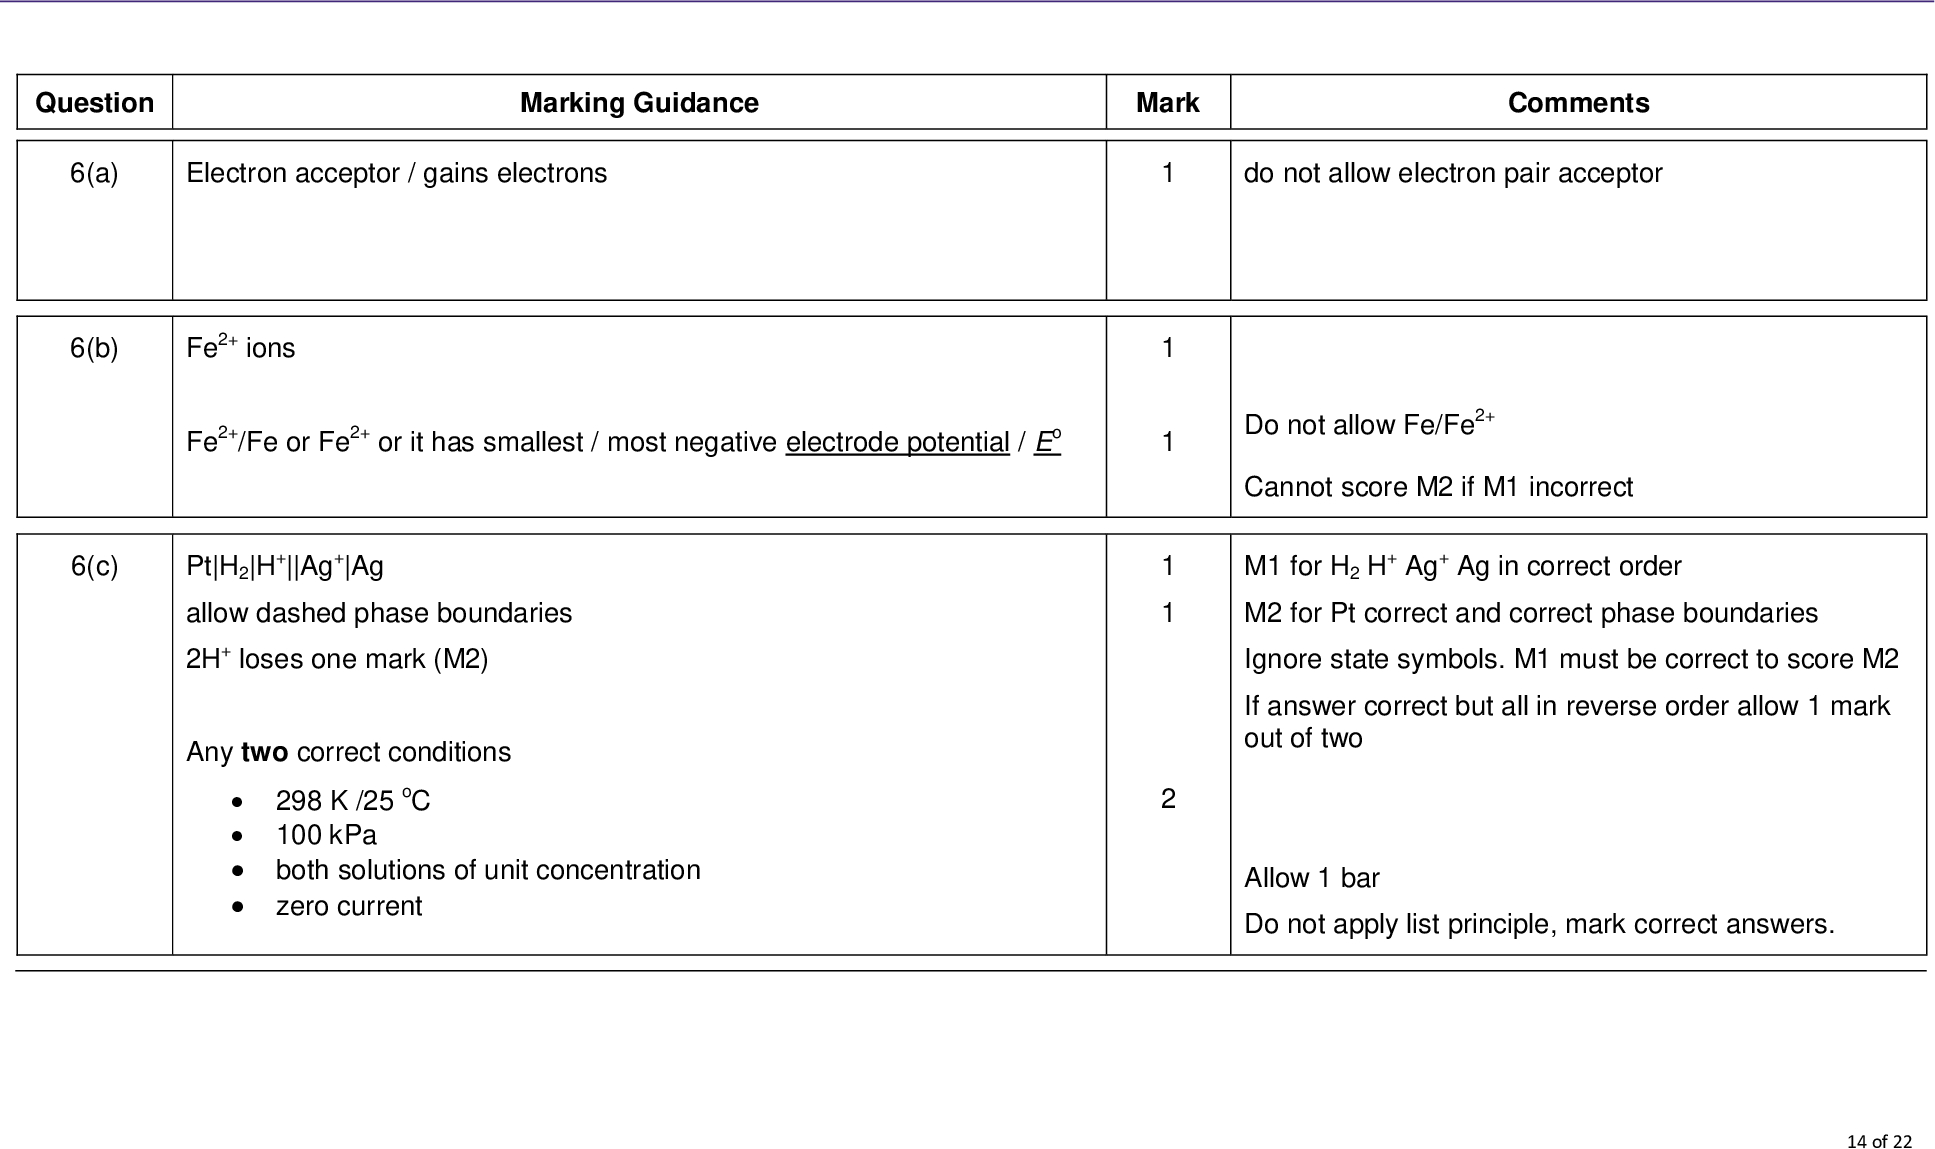 mark scheme a level chemistry chem june question marking guidance mark comments a electron acceptor gains electrons do not allow electron pair acceptor fe ions fe fe or fe or it has smallest most negative electrode potential eo pt h h ag ag allow dashed phase boundaries h loses one mark m any two correct conditions k oc kpa both solutions of unit concentration zero current do not allow fe fe cannot score m if m incorrect m for h h ag ag in correct order m for pt correct and correct phase boundaries ignore state symbols m must be correct to score m if answer correct but all in reverse order allow mark out of two allow bar do not apply list principle mark correct answers of b c d e au au e o h o or e m f ecell v au ions oxidise water or water reduces au ions gold metal solid precipitate or bubbles effervescence of oxygen gas gas produced au h o au h o or au h o au h o e i v e ii chloride ions cl react with form a precipitate with silver ions ag form agcl e o h o e fe fe or e m f ecell v therefore the iron ii ions are oxidised or converted into iron iii ions by oxygen f mark scheme a level chemistry chem june if both species in electrode given must be in correct order i e au au allow water donates electrons to au penalise incorrect observations allow multiples do not allow penalise reaction of chloride ions with iron ions or iron species in electrode if all given must be in correct order if chloride ions oxidised to chlorine lose m m can be obtained or lost from equation ignore observations of